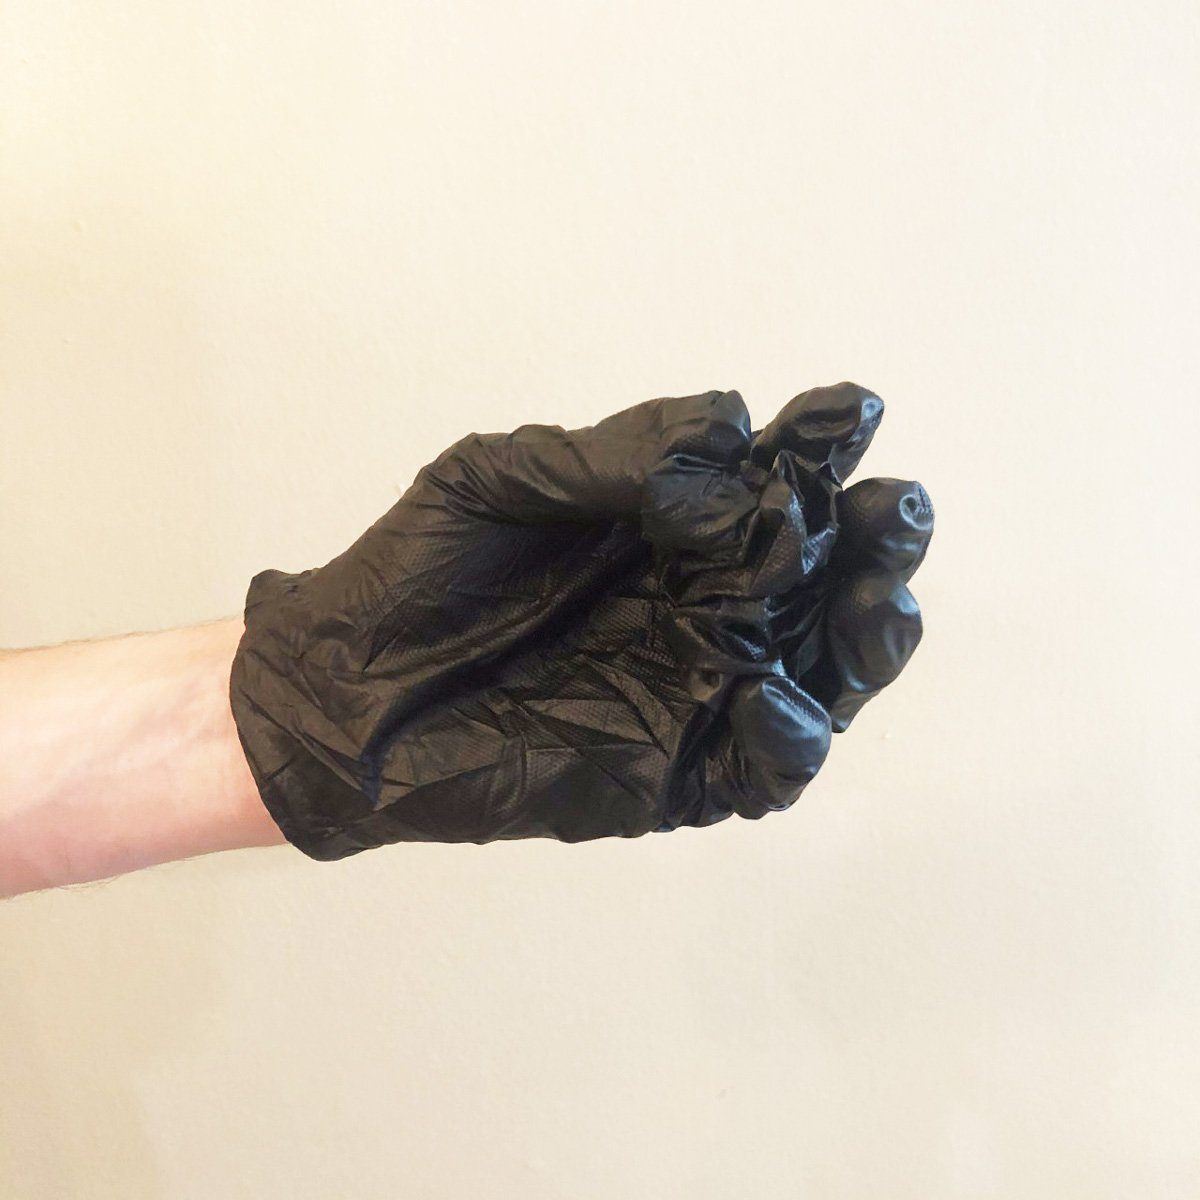 Step 3 of removing gloves